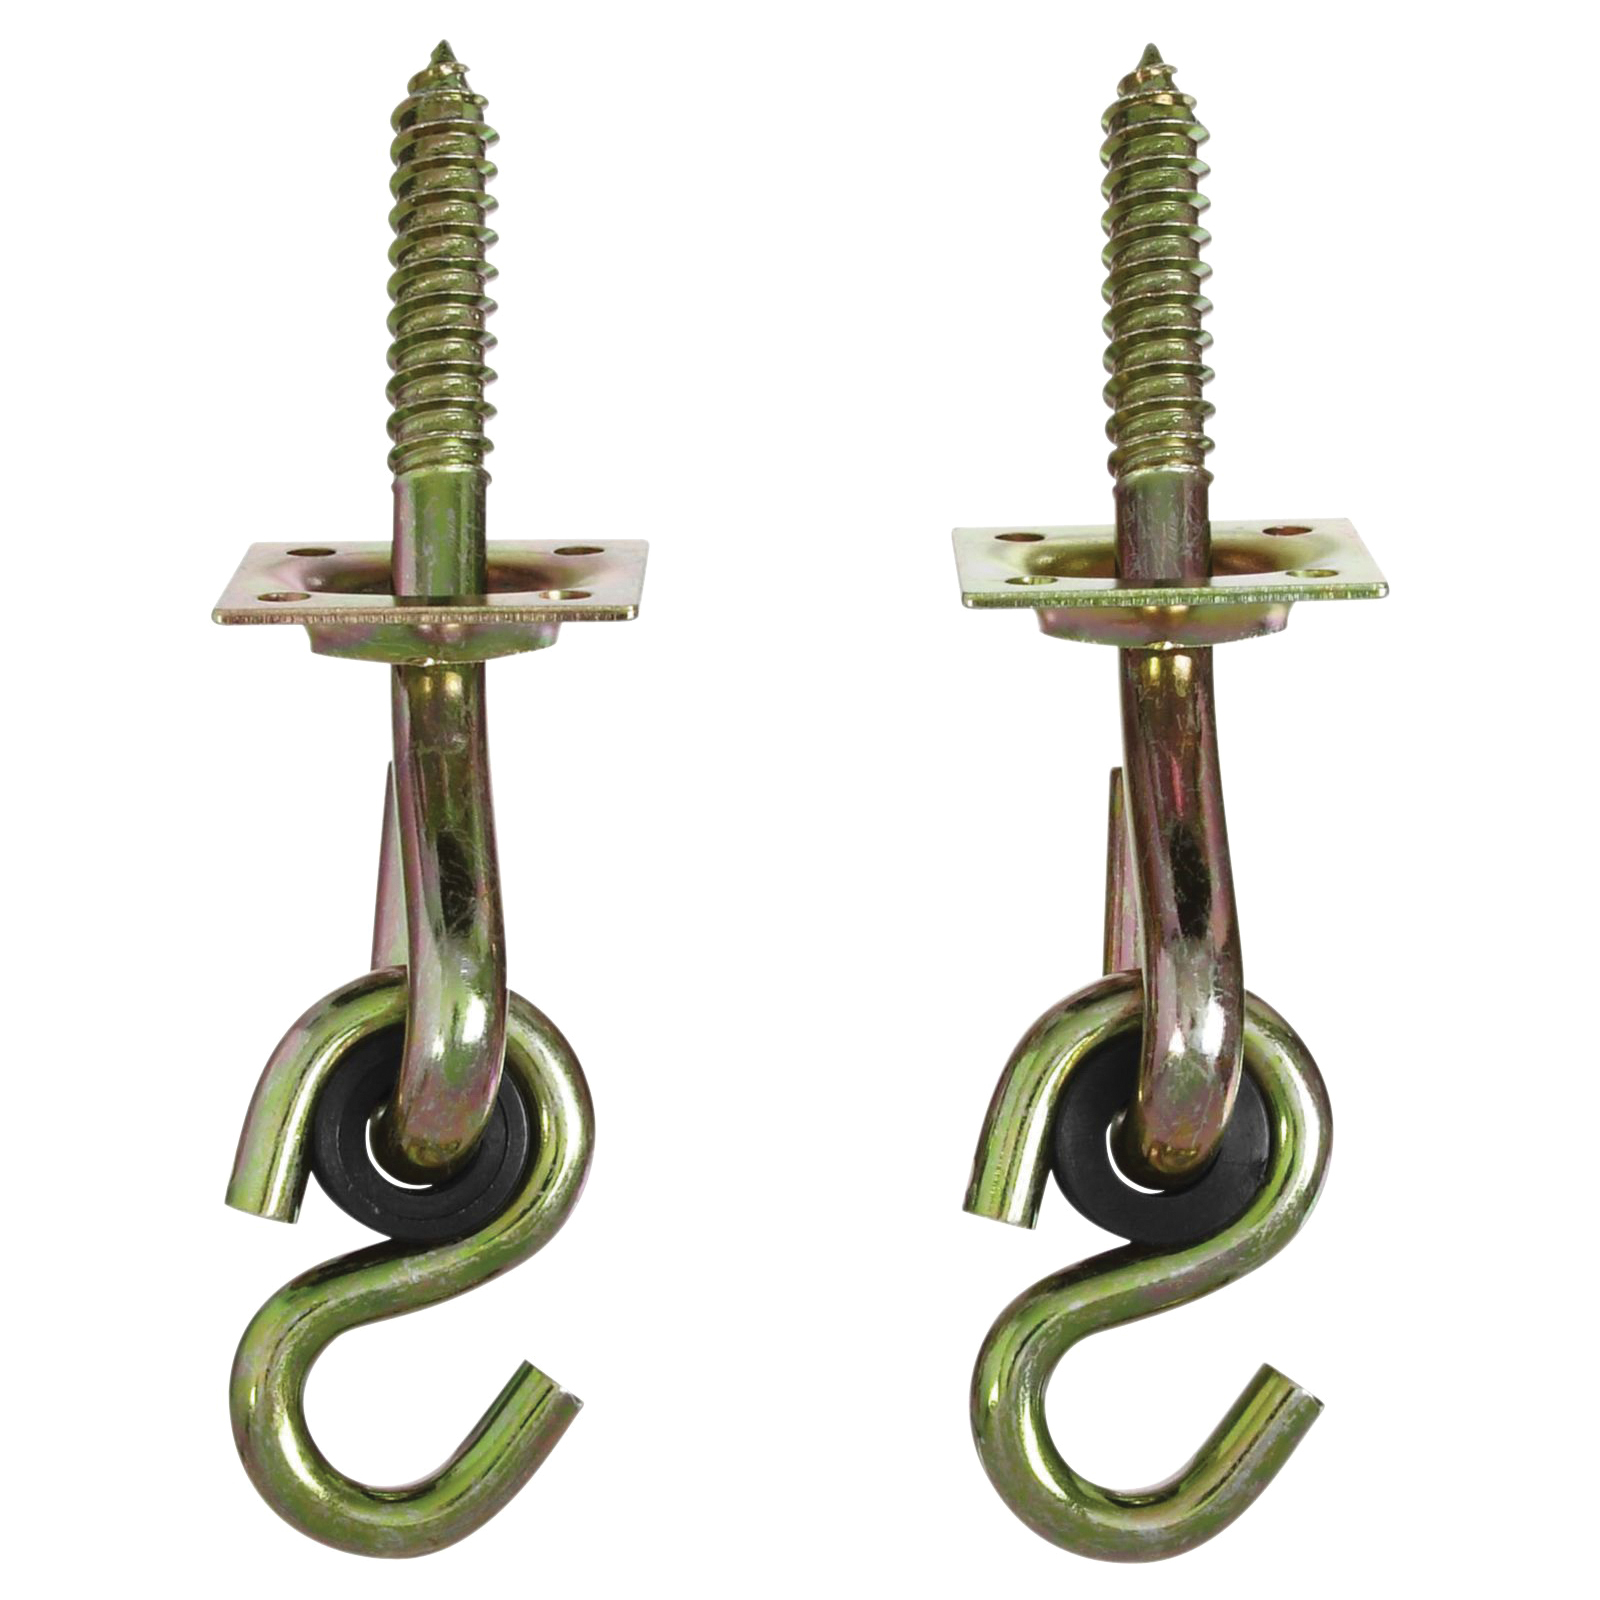 Picture of National Hardware V2038 Series N264-069 Swing Hook Kit, 0.32 in Opening, Steel, Yellow